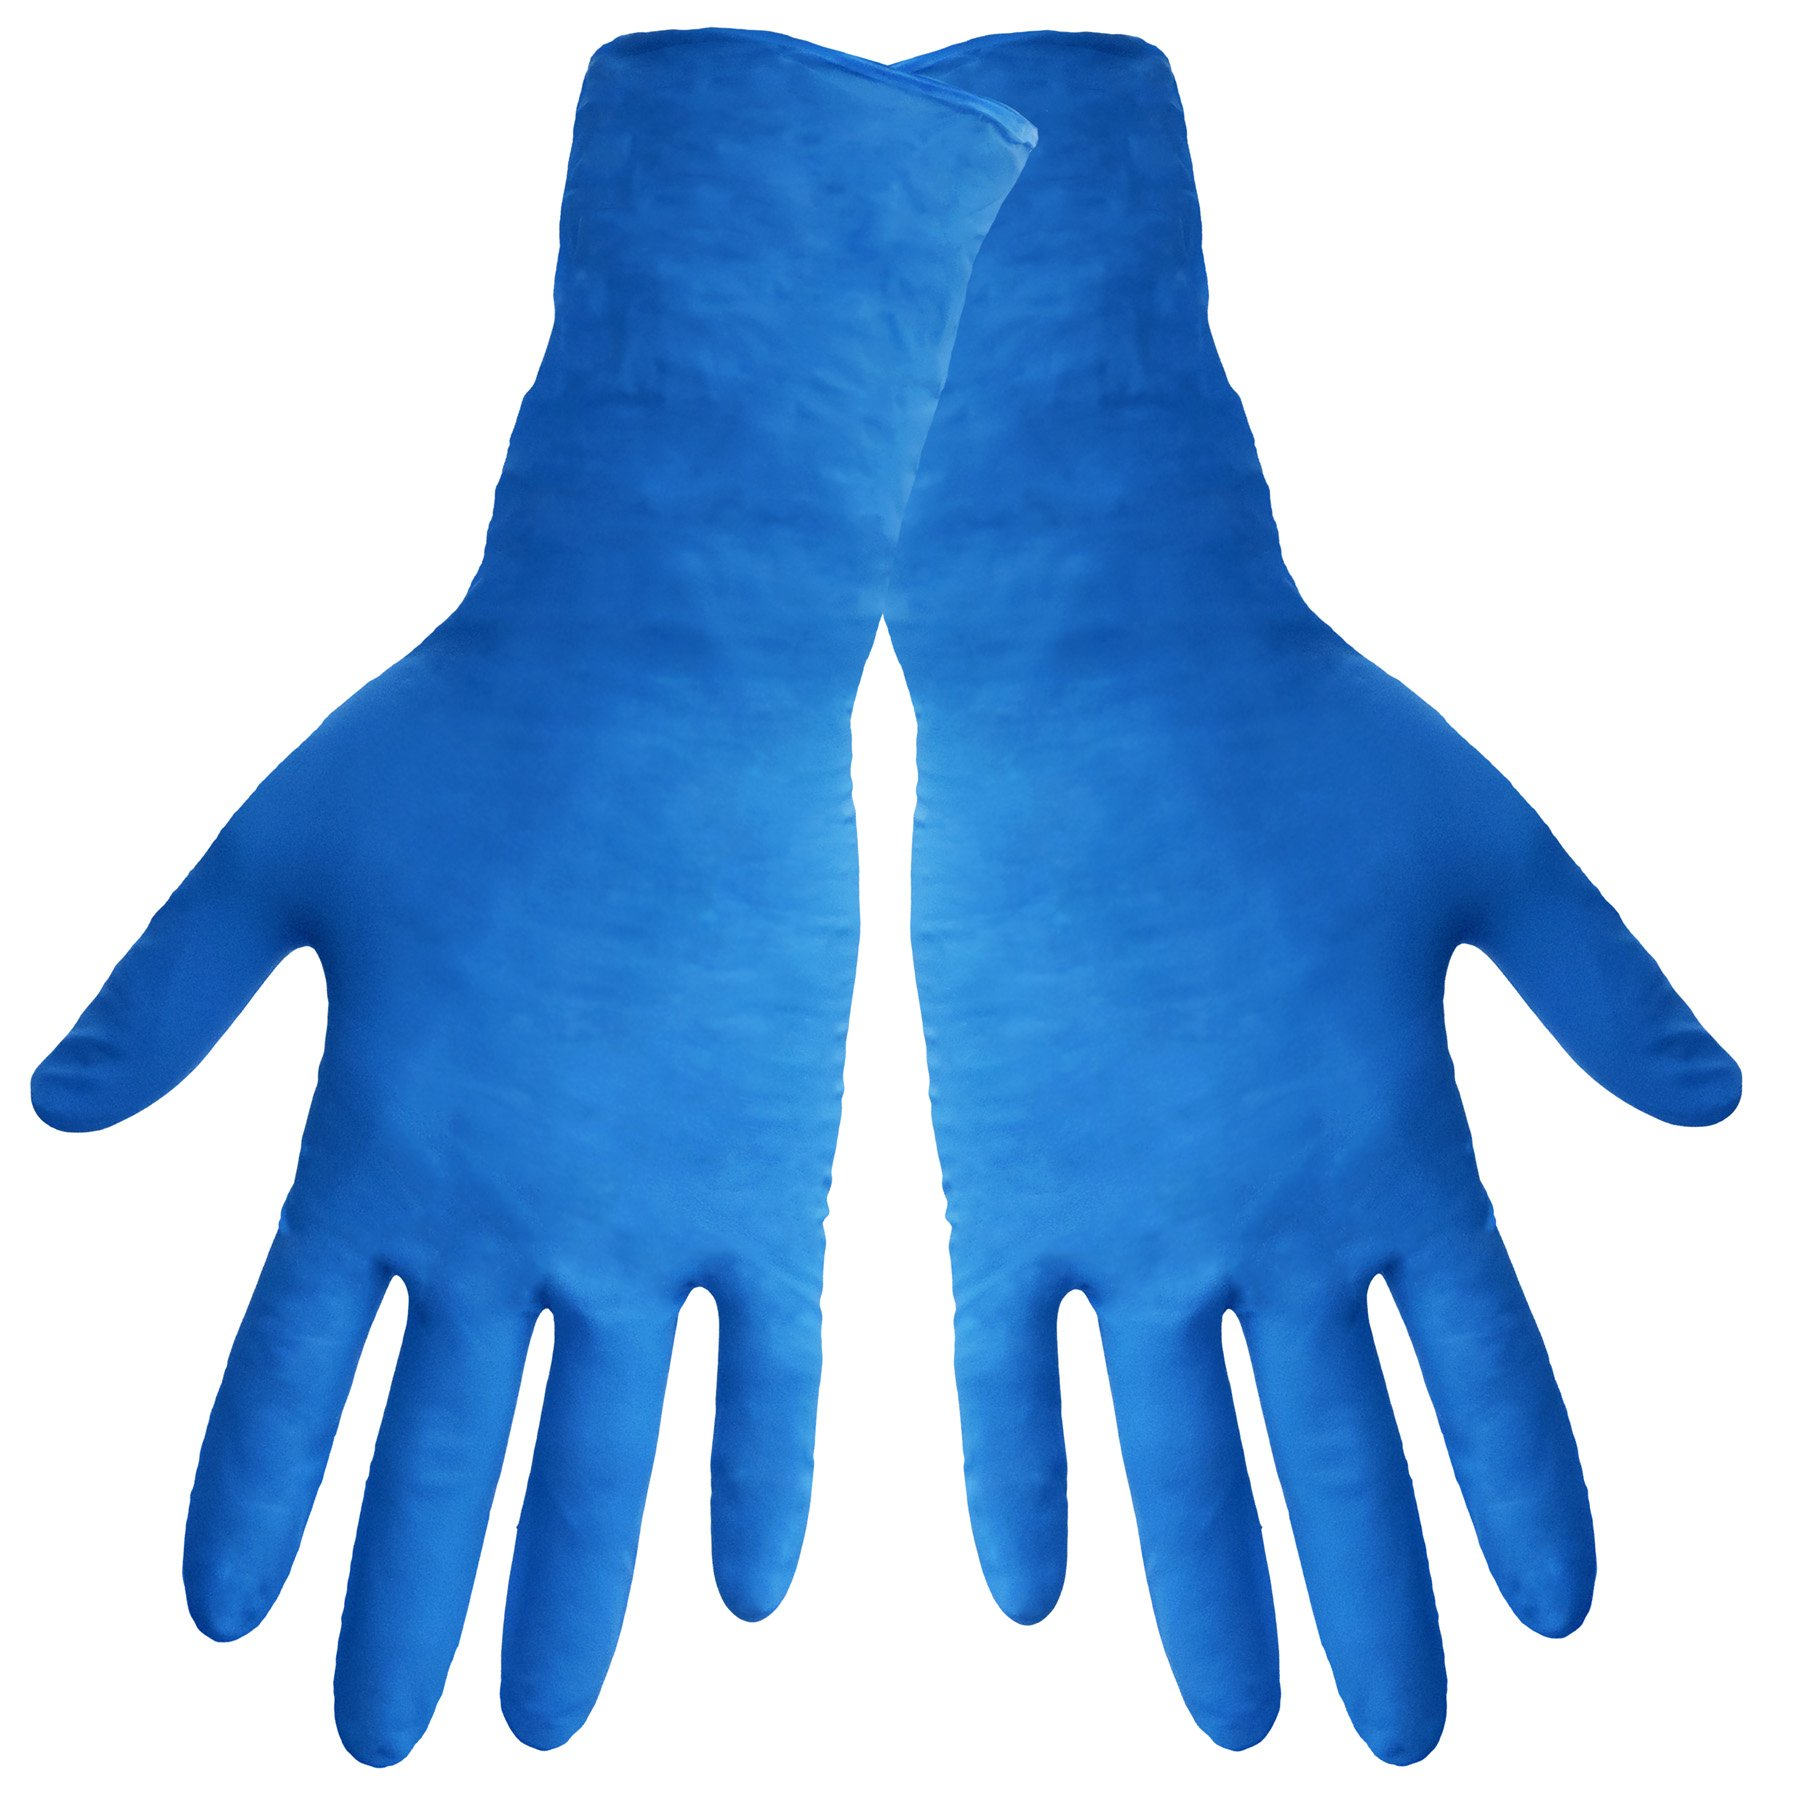 Global Glove 805PF Nitrile Glove with Rolled Cuff, Disposable, Powder Free, 8 mils Thick, 11'' Length, Extra Large (Case of 500)